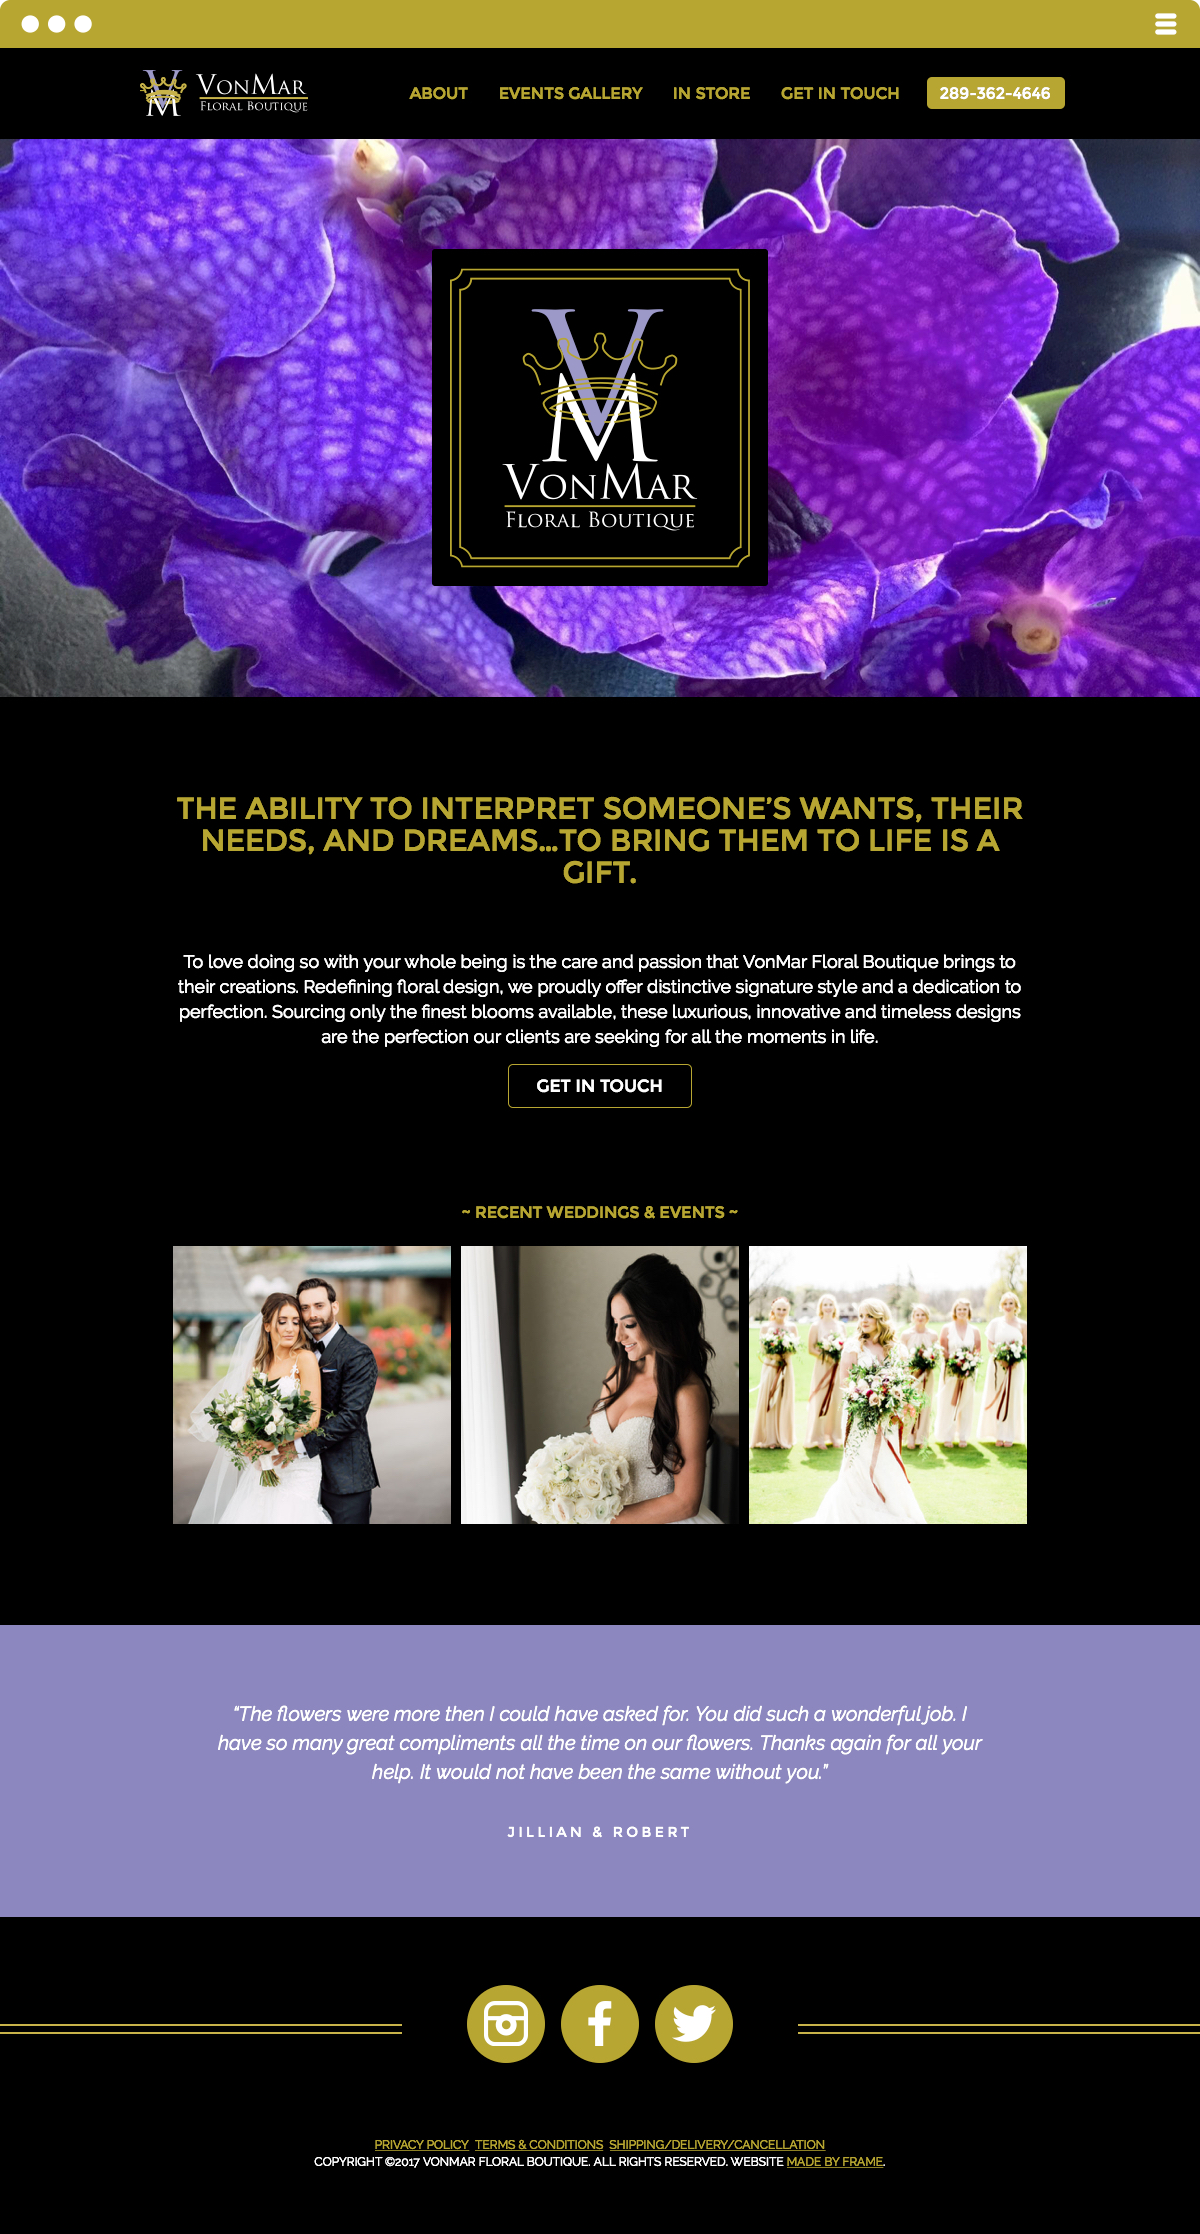 VonMar Floral Boutique Website Made by Frame